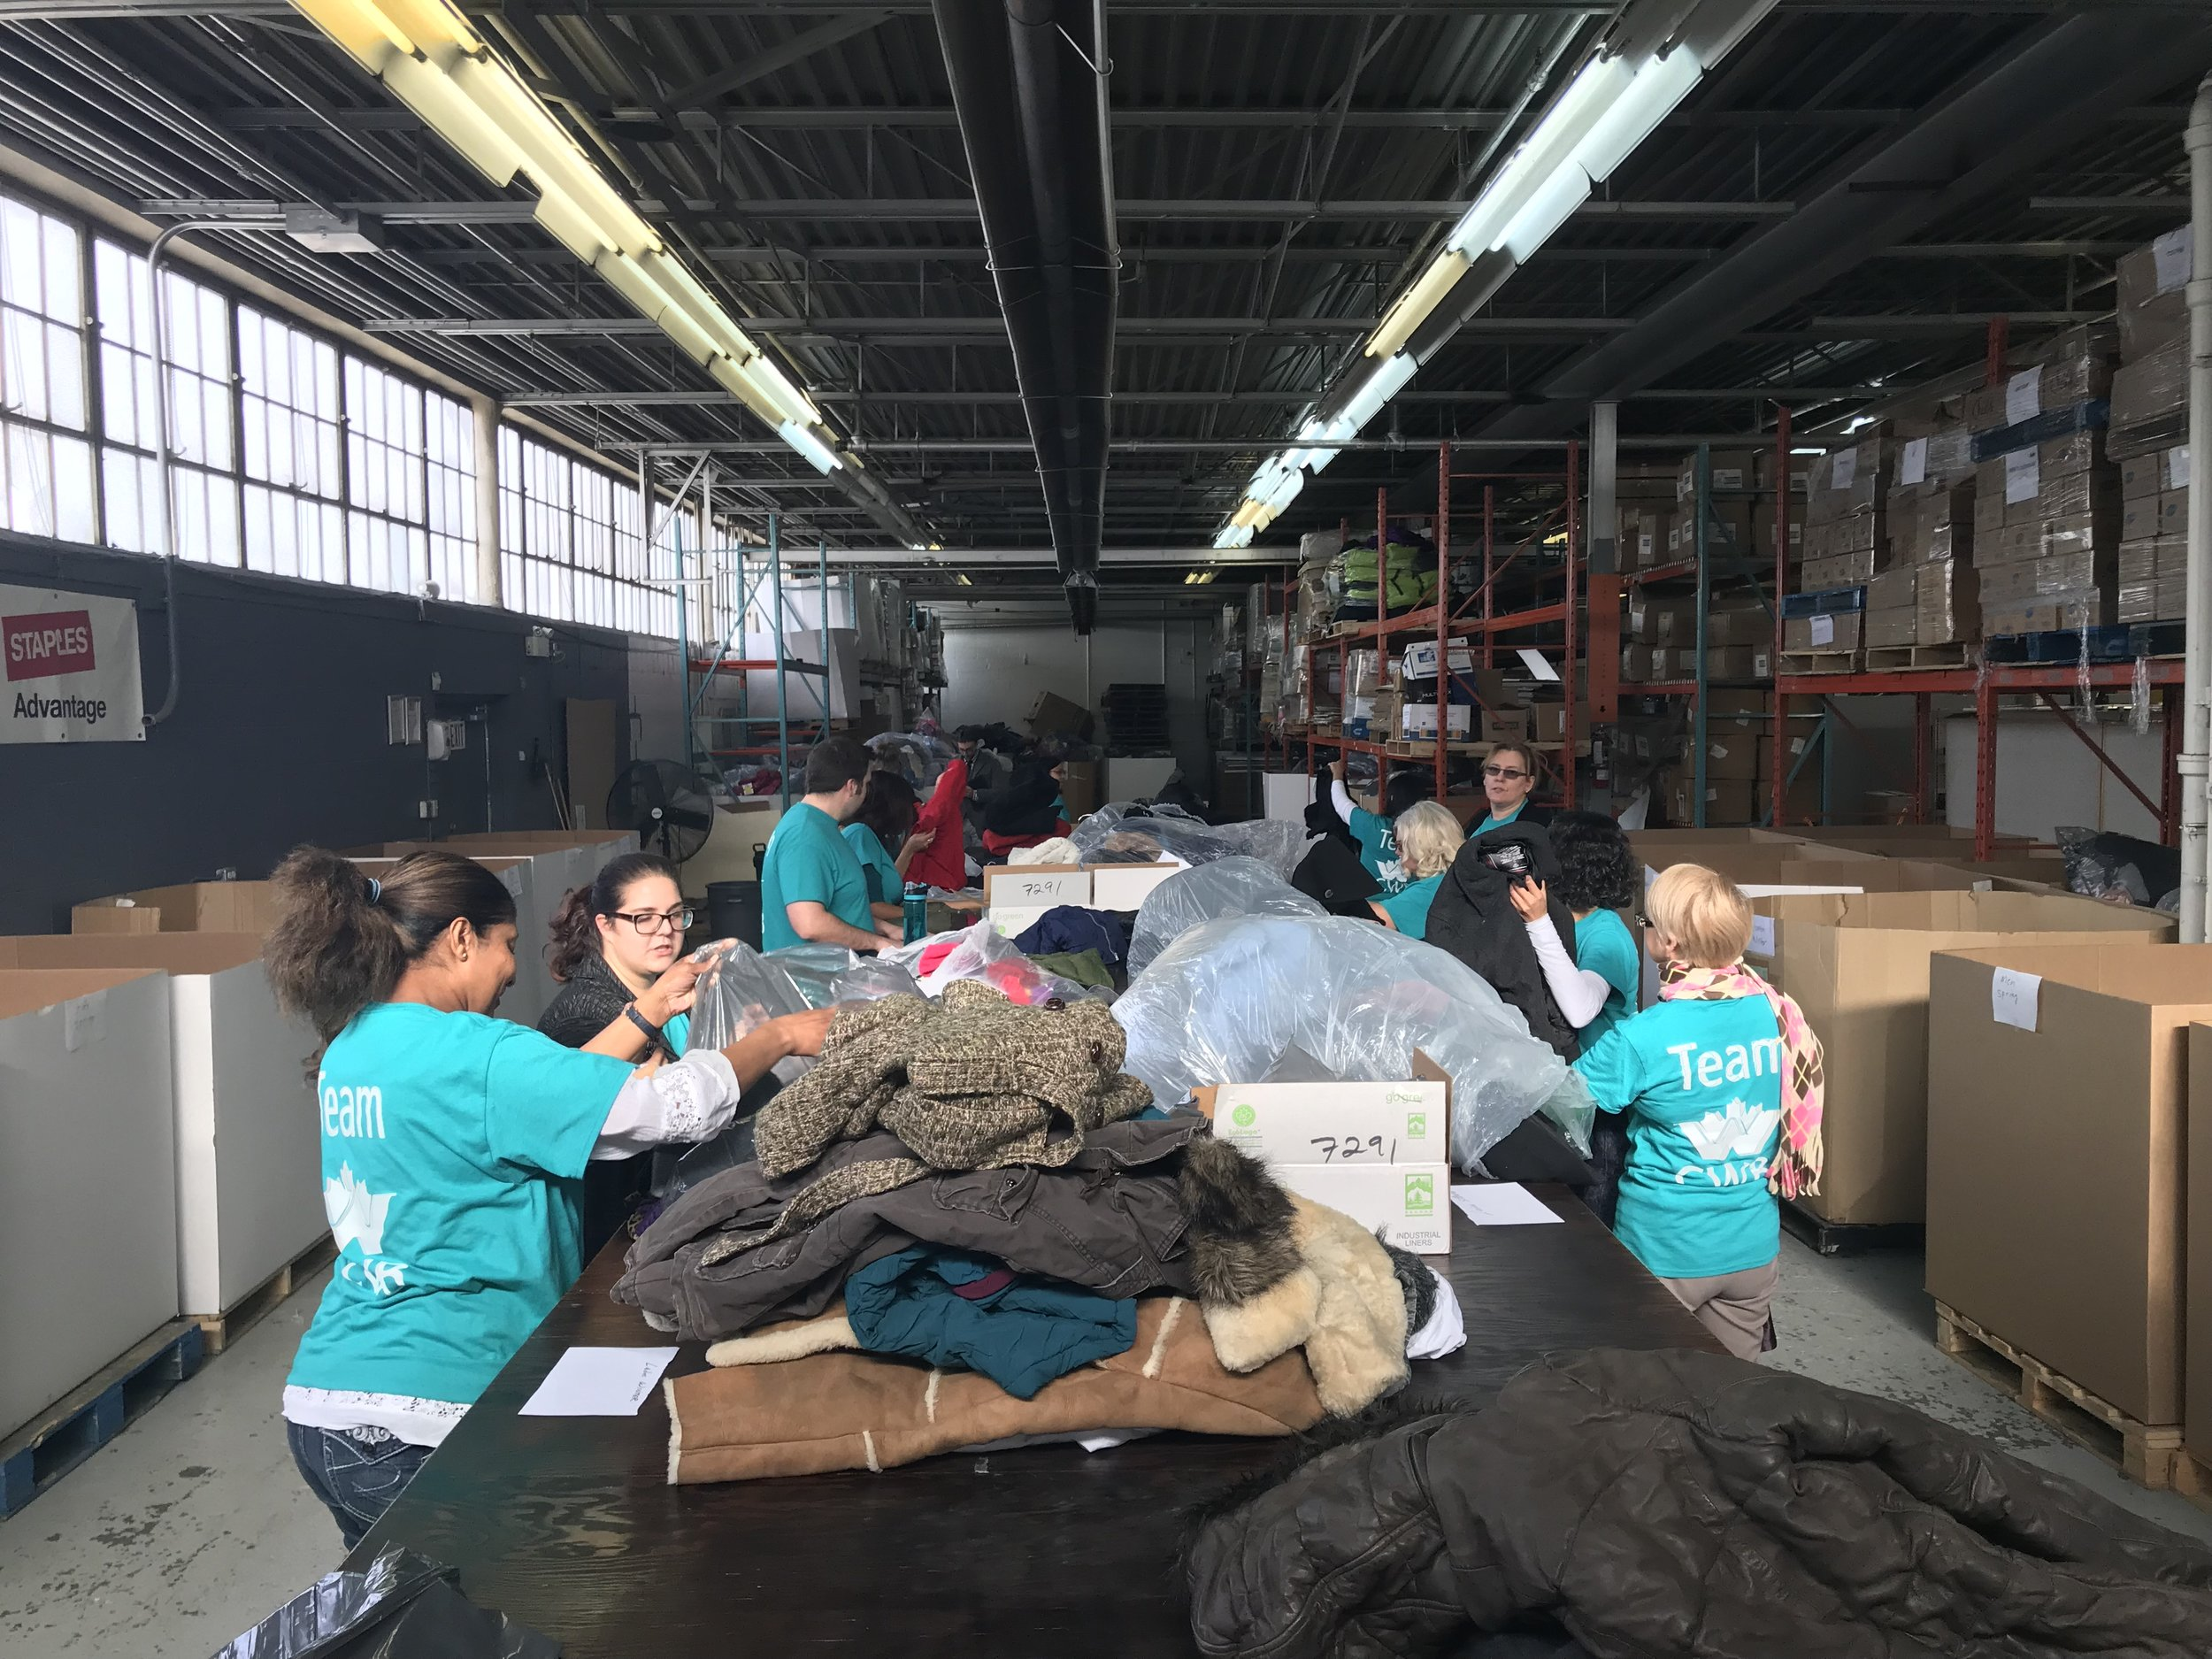 CWB Day of Caring at IKE sorting coats for kids and families